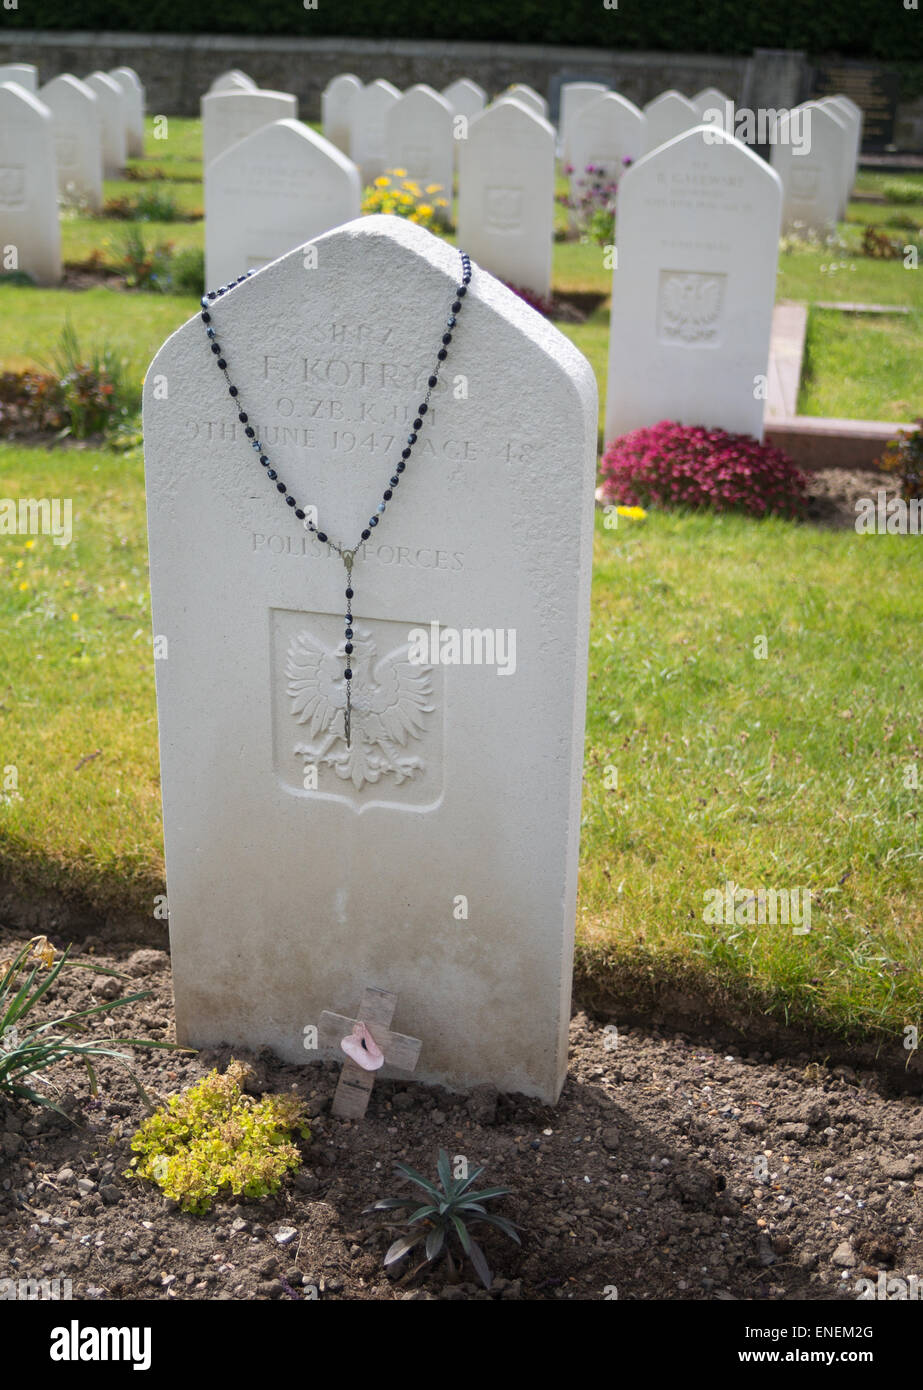 the-grave-of-a-polish-soldier-with-rosar